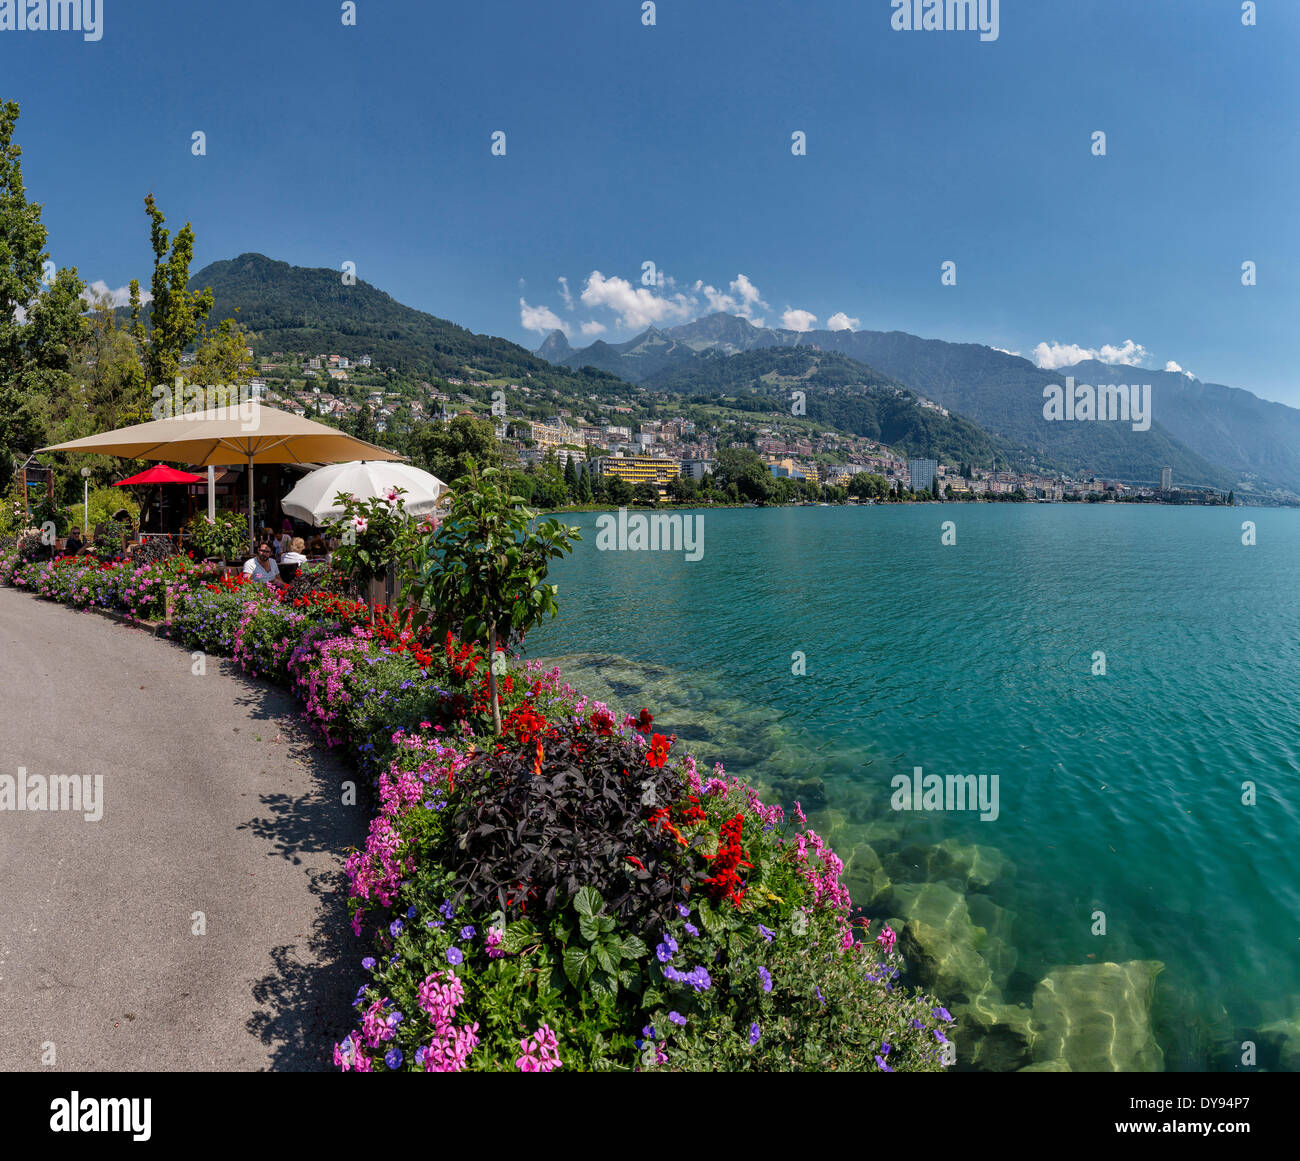 Quai de Clarens promenade lake Geneva Leman town village water flowers summer mountains lake Montreux Vaud Switzerland Europ - Stock Image